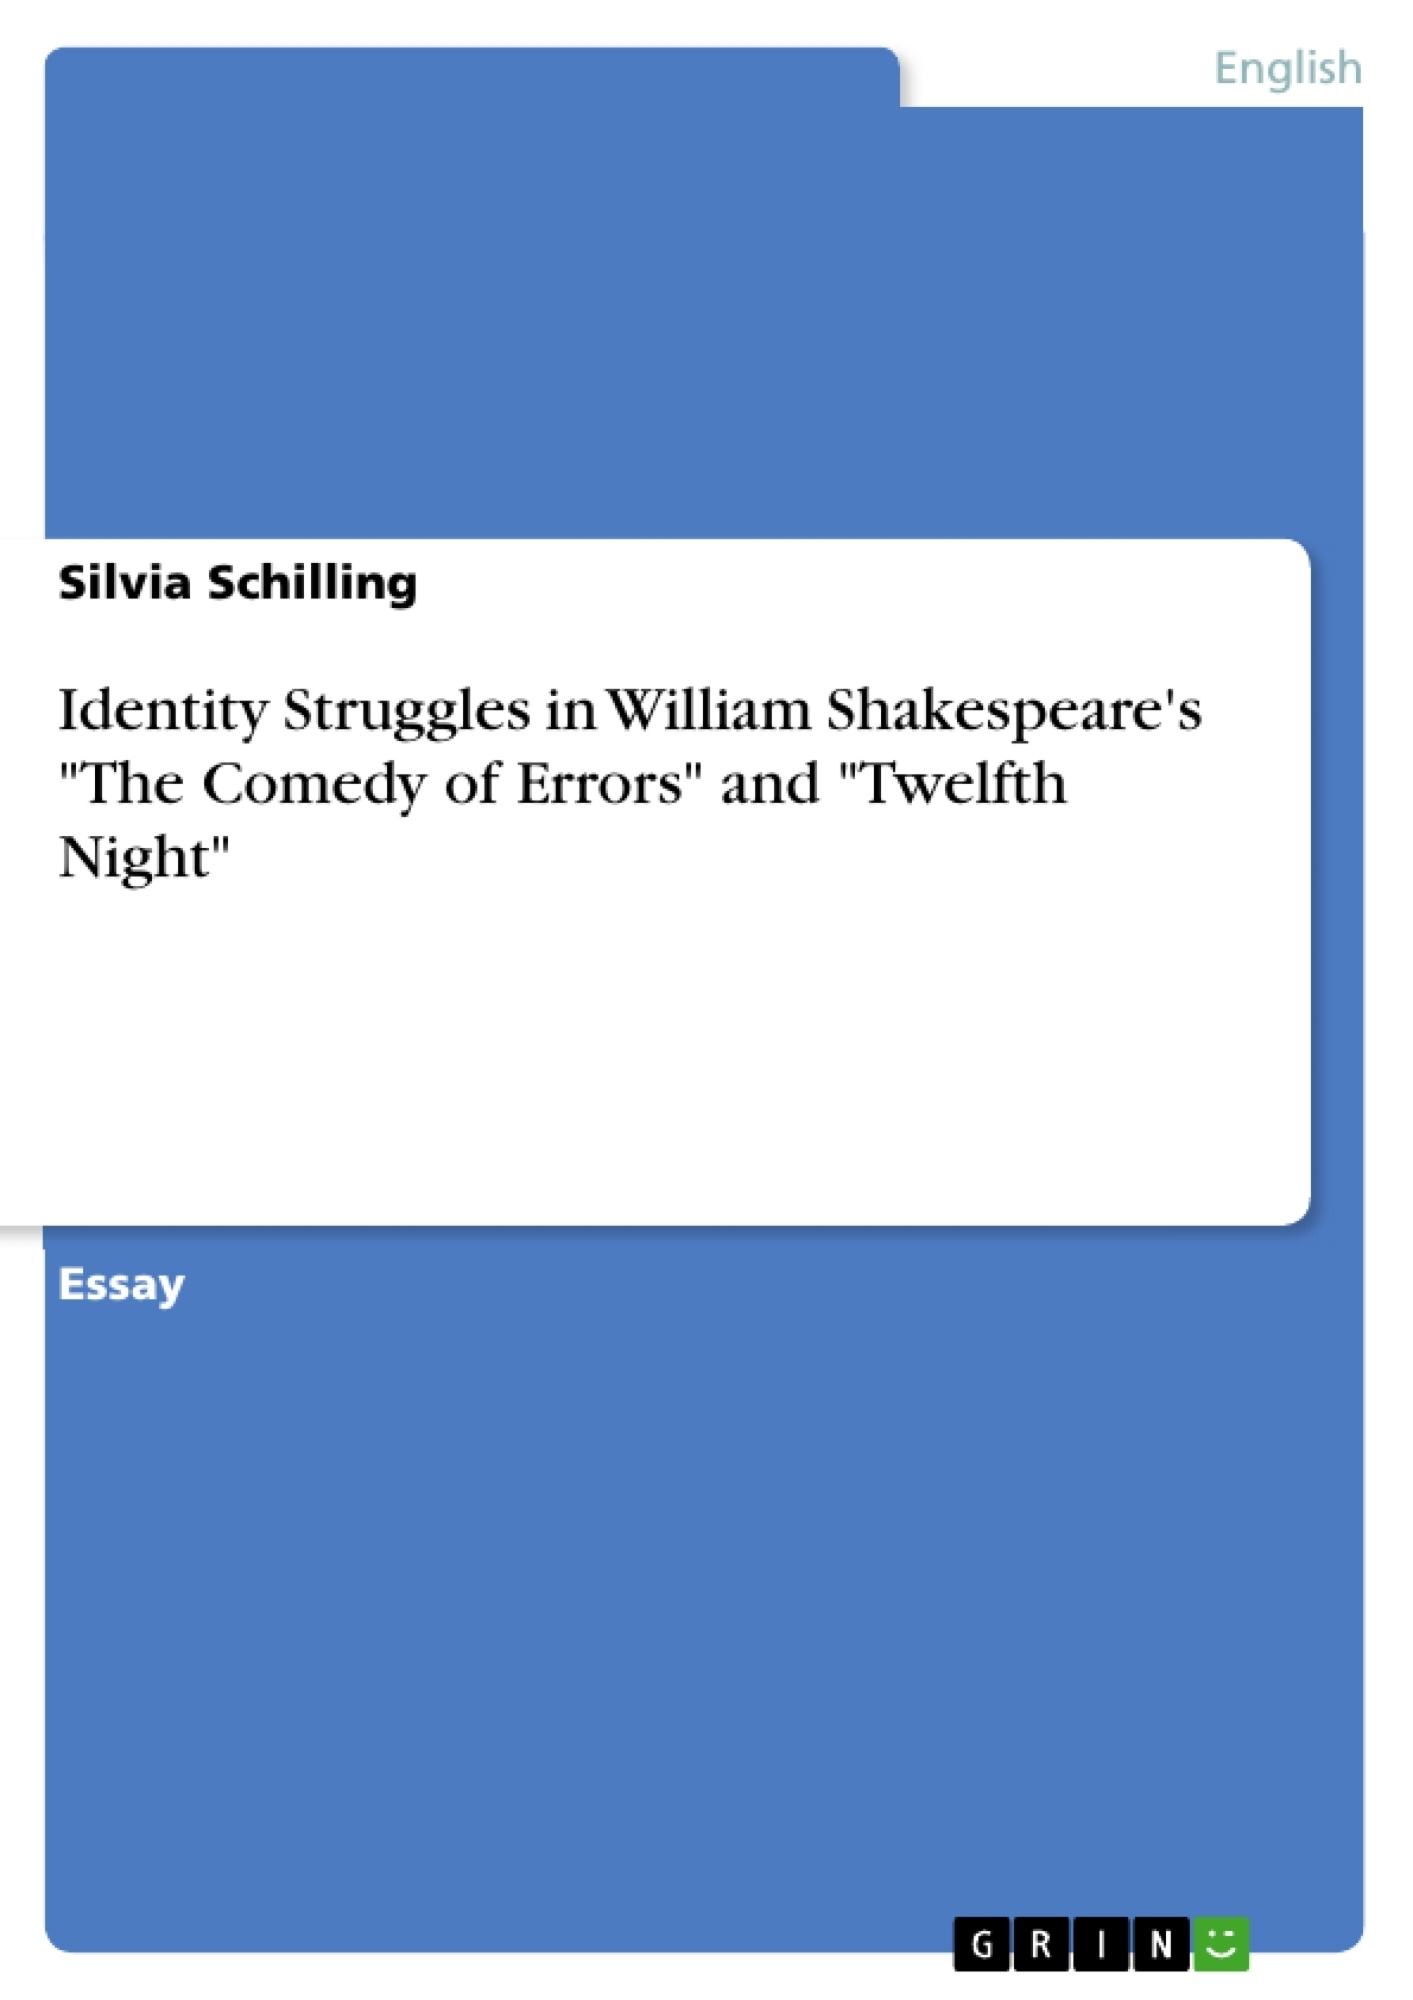 """Title: Identity Struggles in William Shakespeare's """"The Comedy of Errors"""" and """"Twelfth Night"""""""